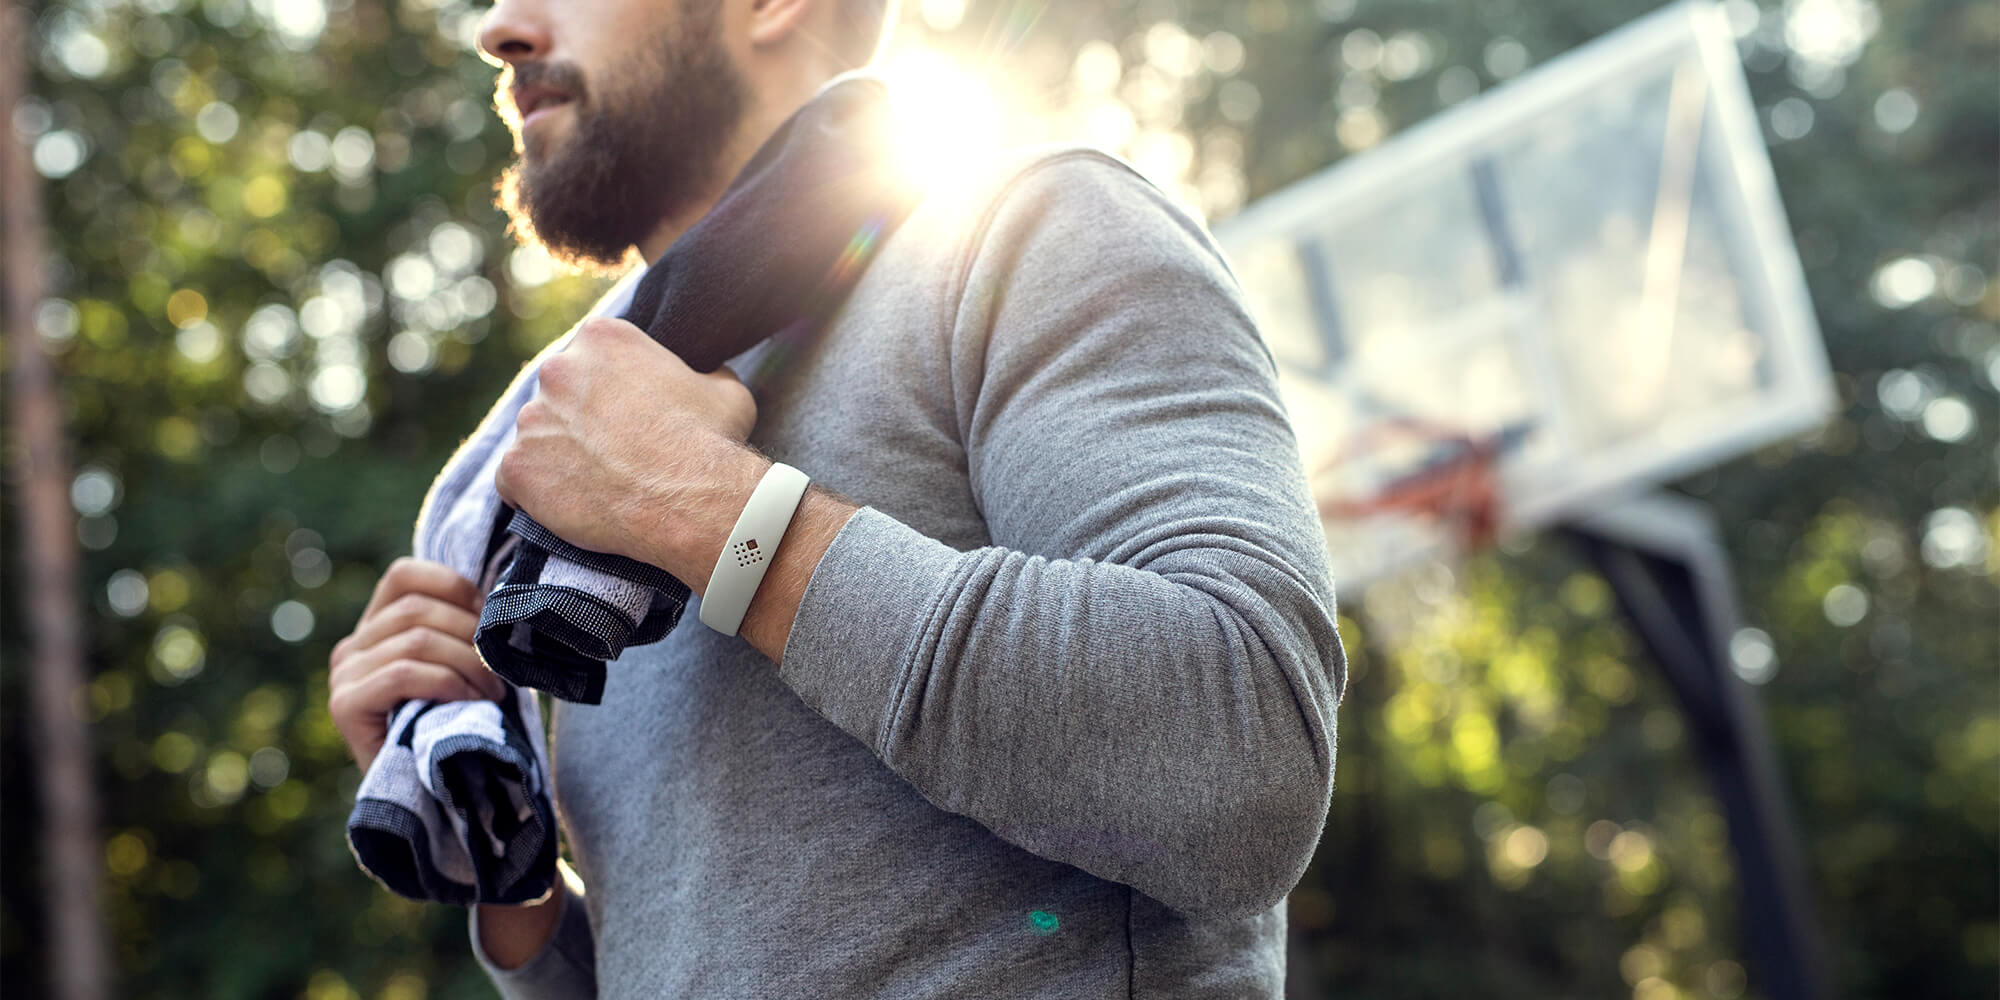 Guy does outdoor sports while wearing the sleek AMBRIO bracelet